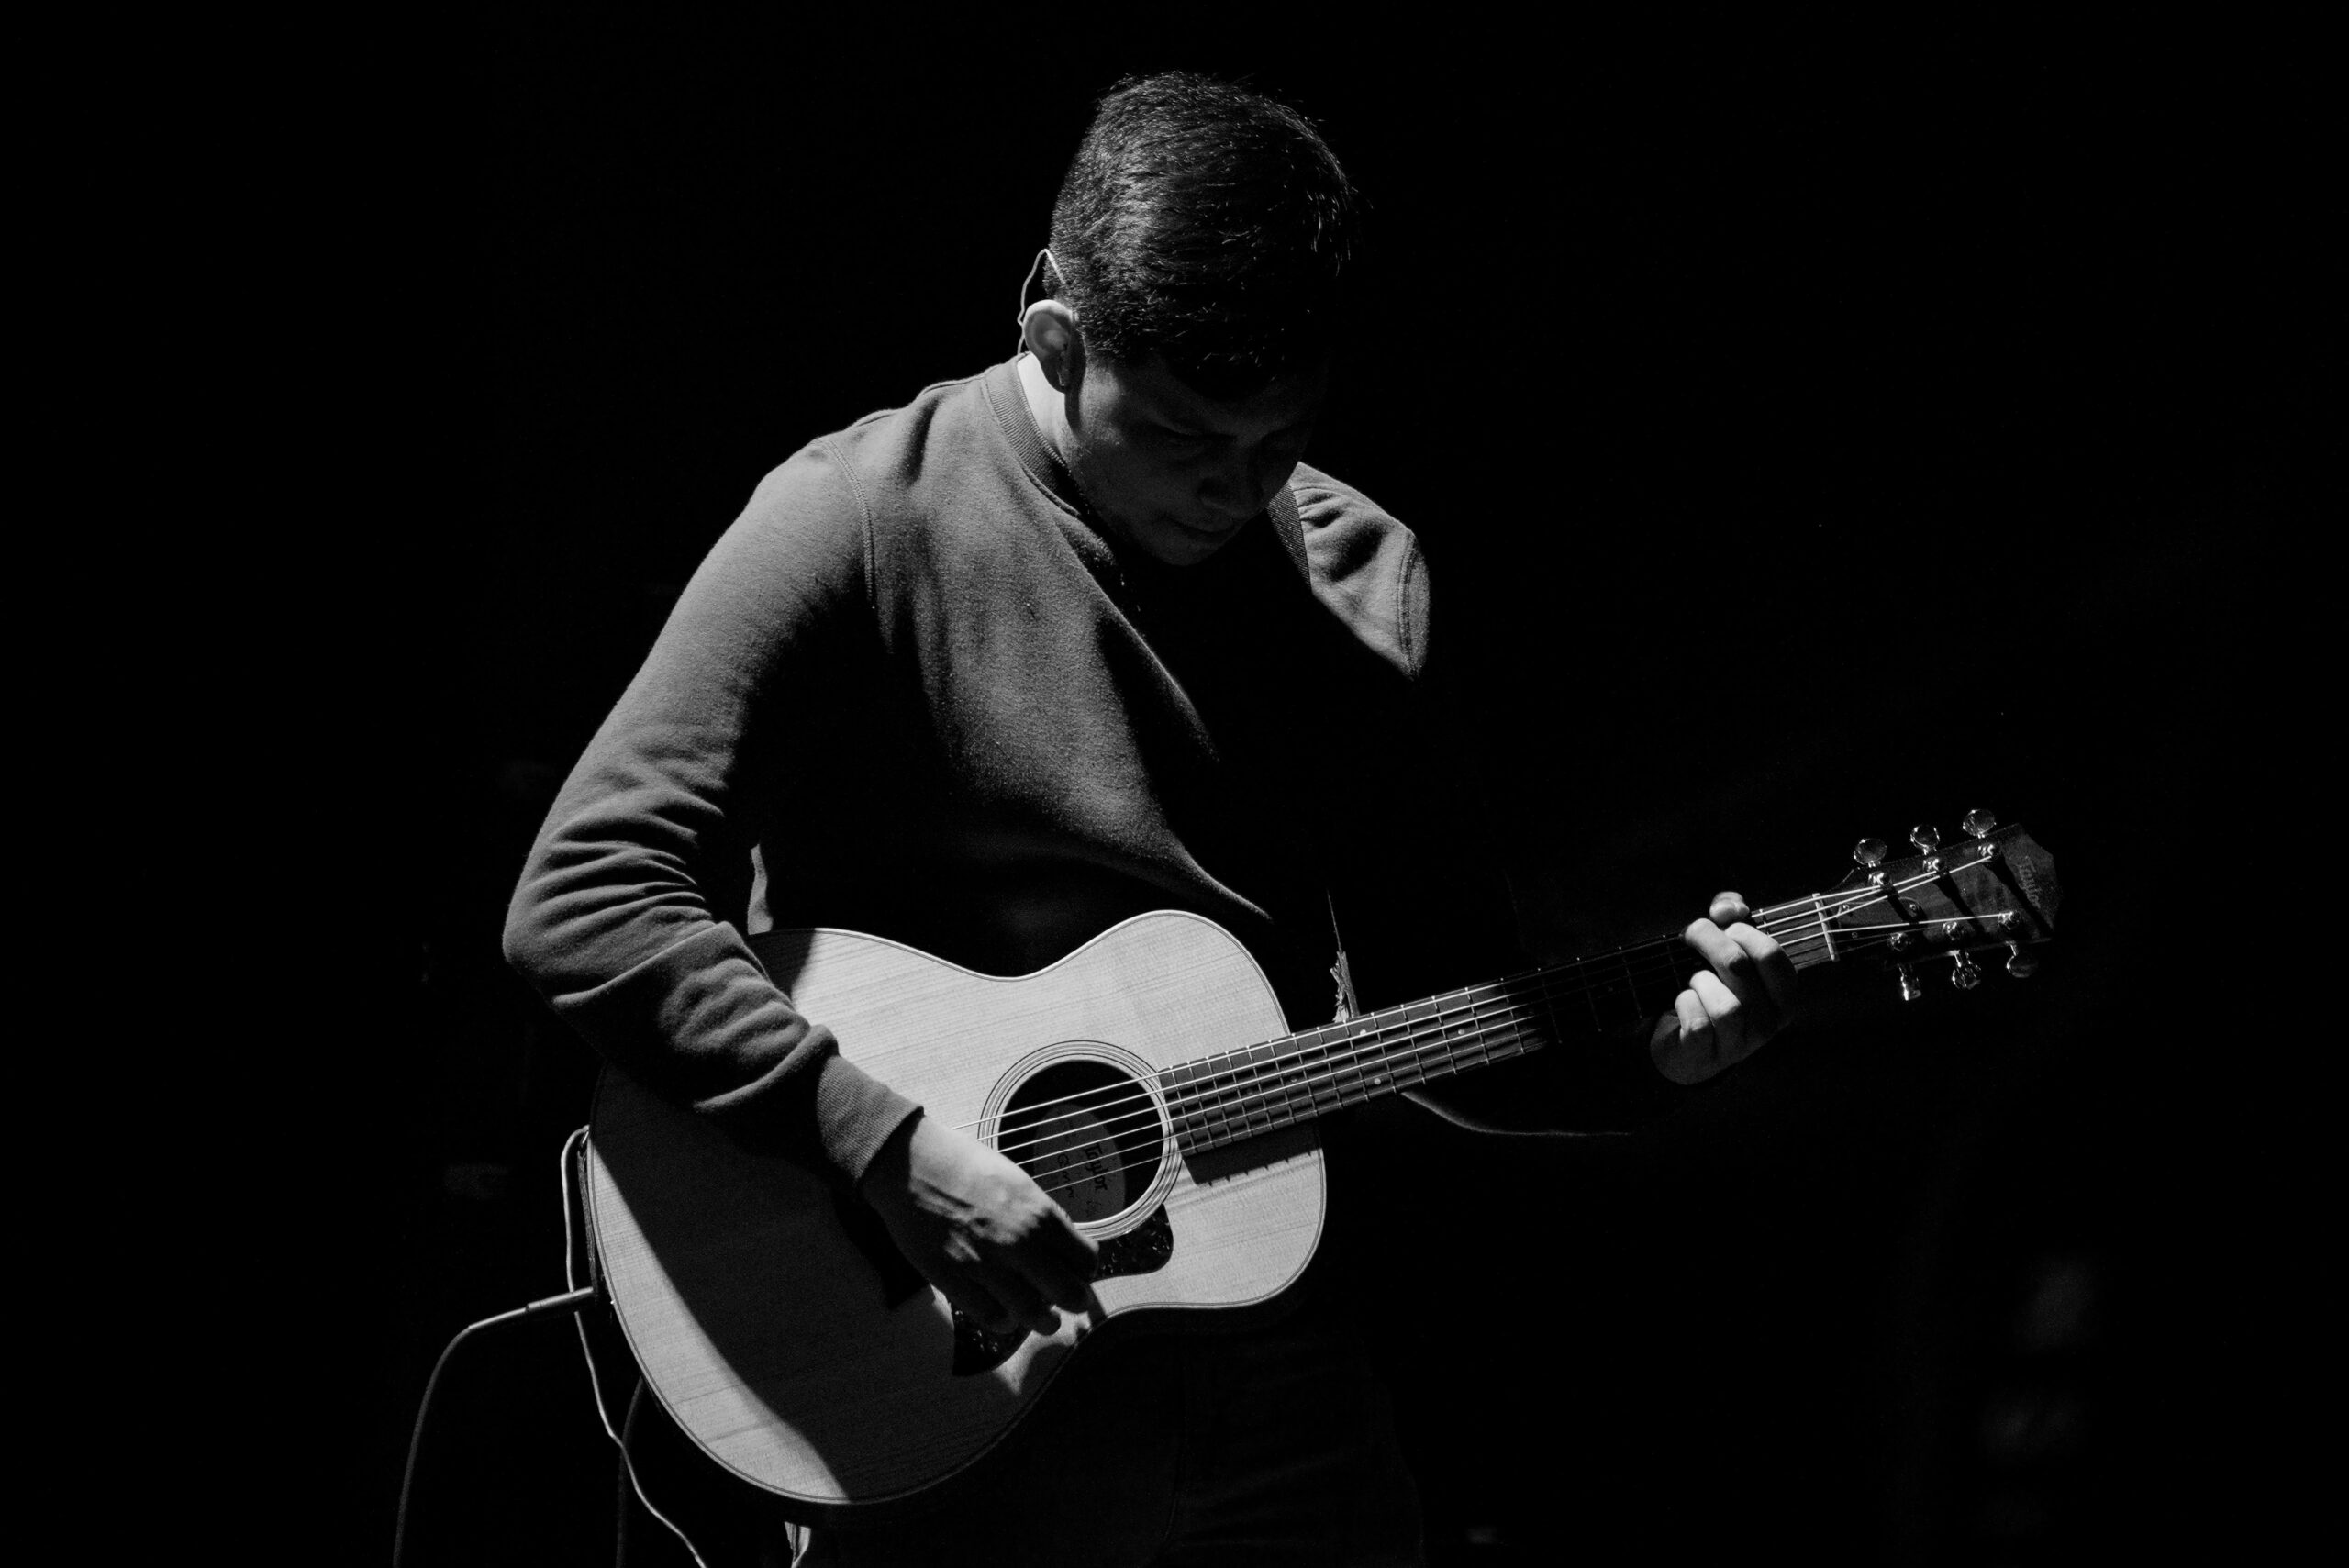 Grayscale Photo of A Man Playing Guitar | 9 Attributes You Need To Have When Learning The Guitar